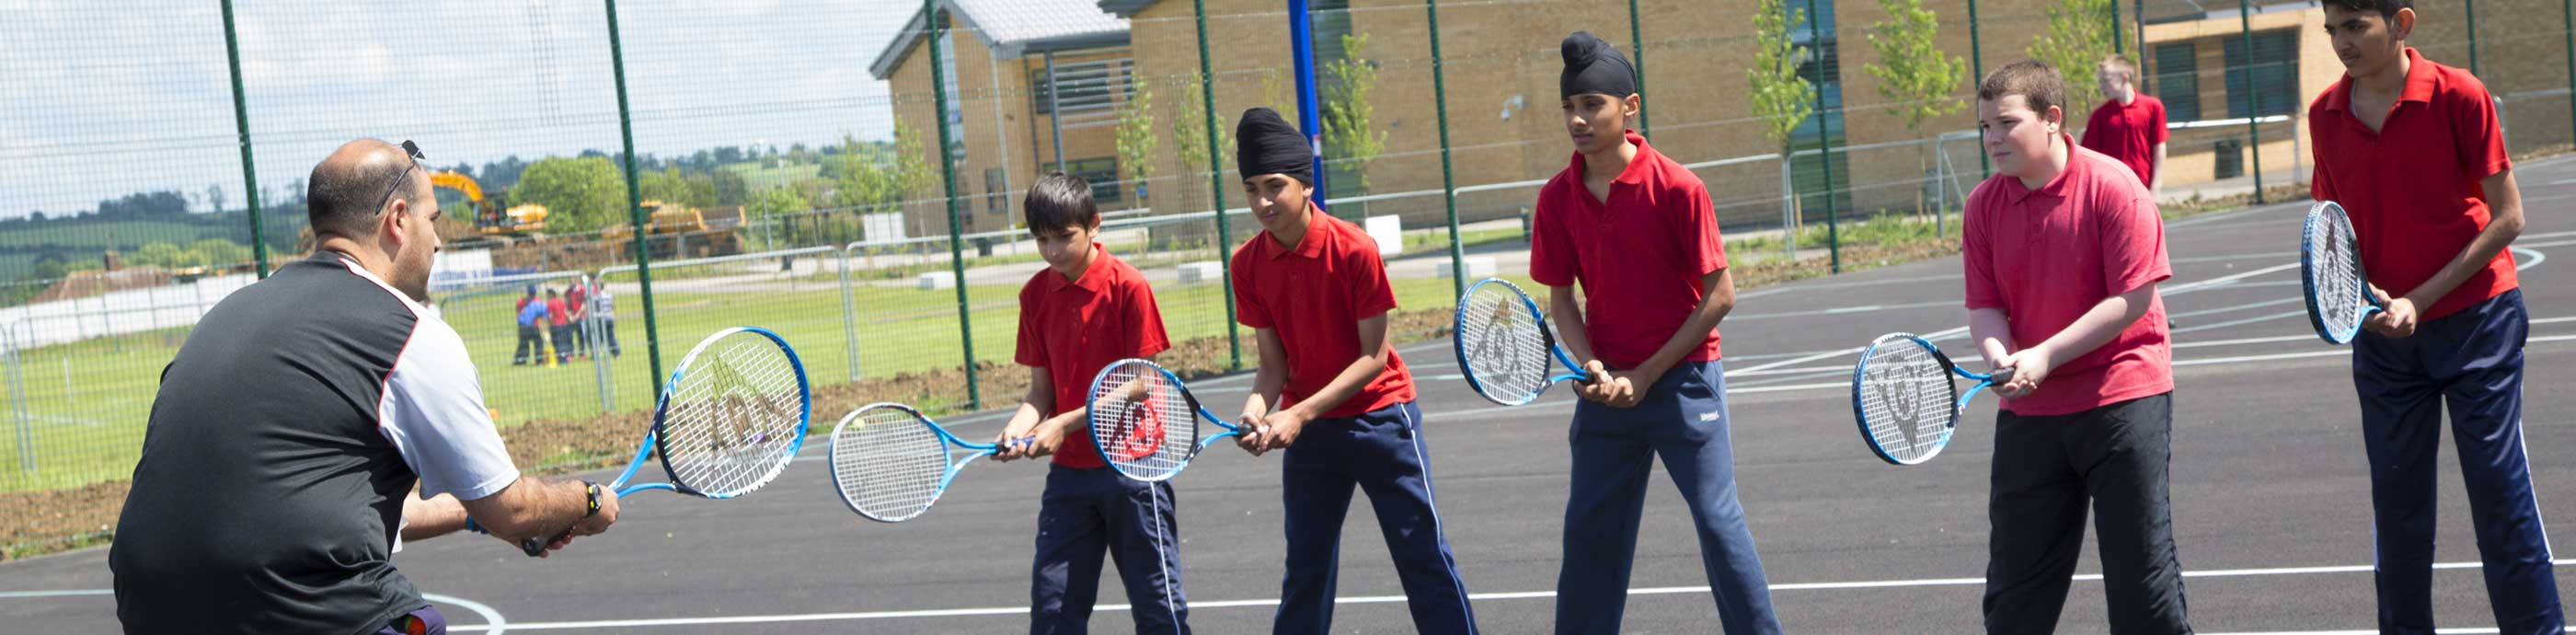 City of Leicester College Tennis